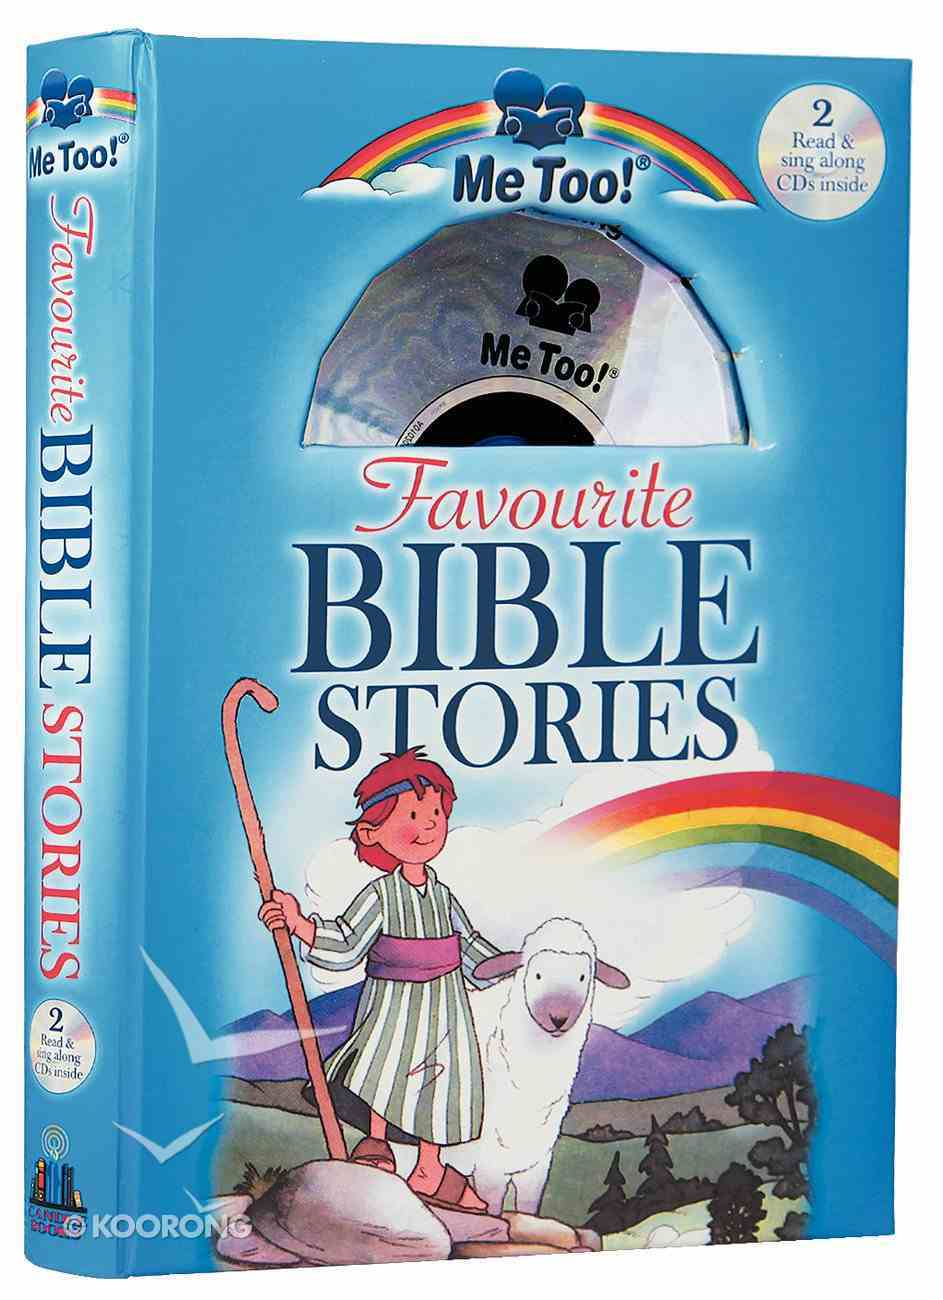 Favourite Bible Stories (2 Read and Sing Along Cd's) (Me Too! Series) Hardback